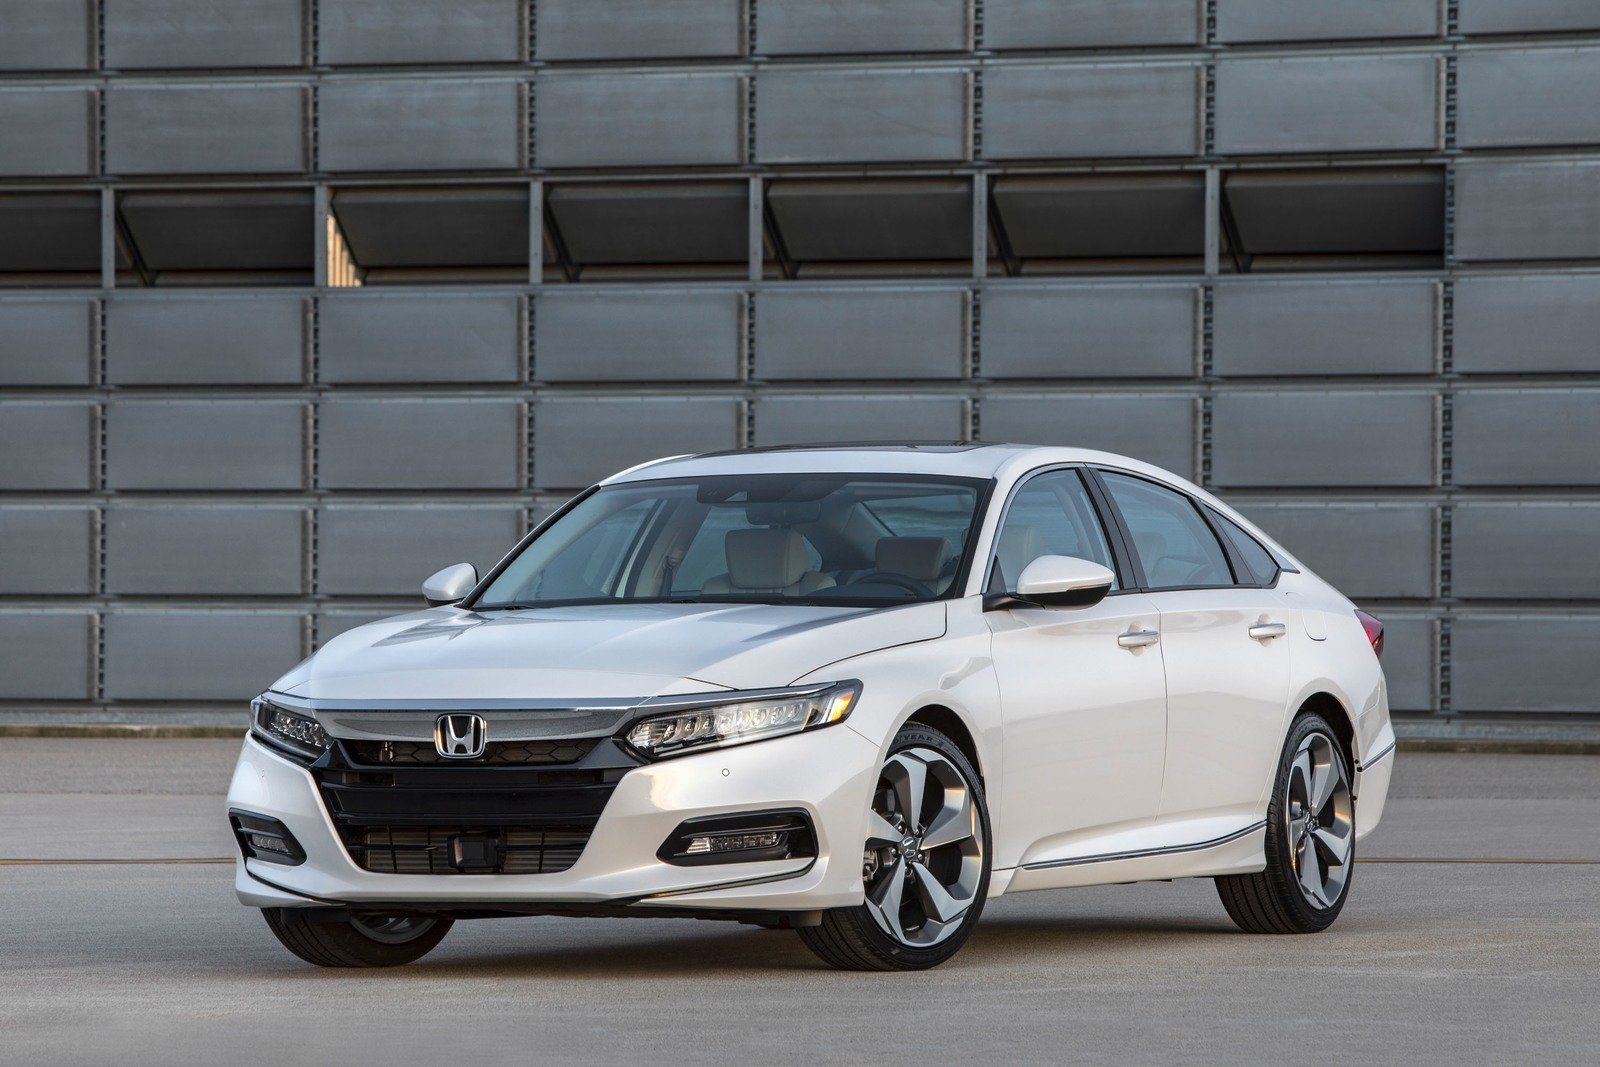 2018 honda accord review top speed. Black Bedroom Furniture Sets. Home Design Ideas